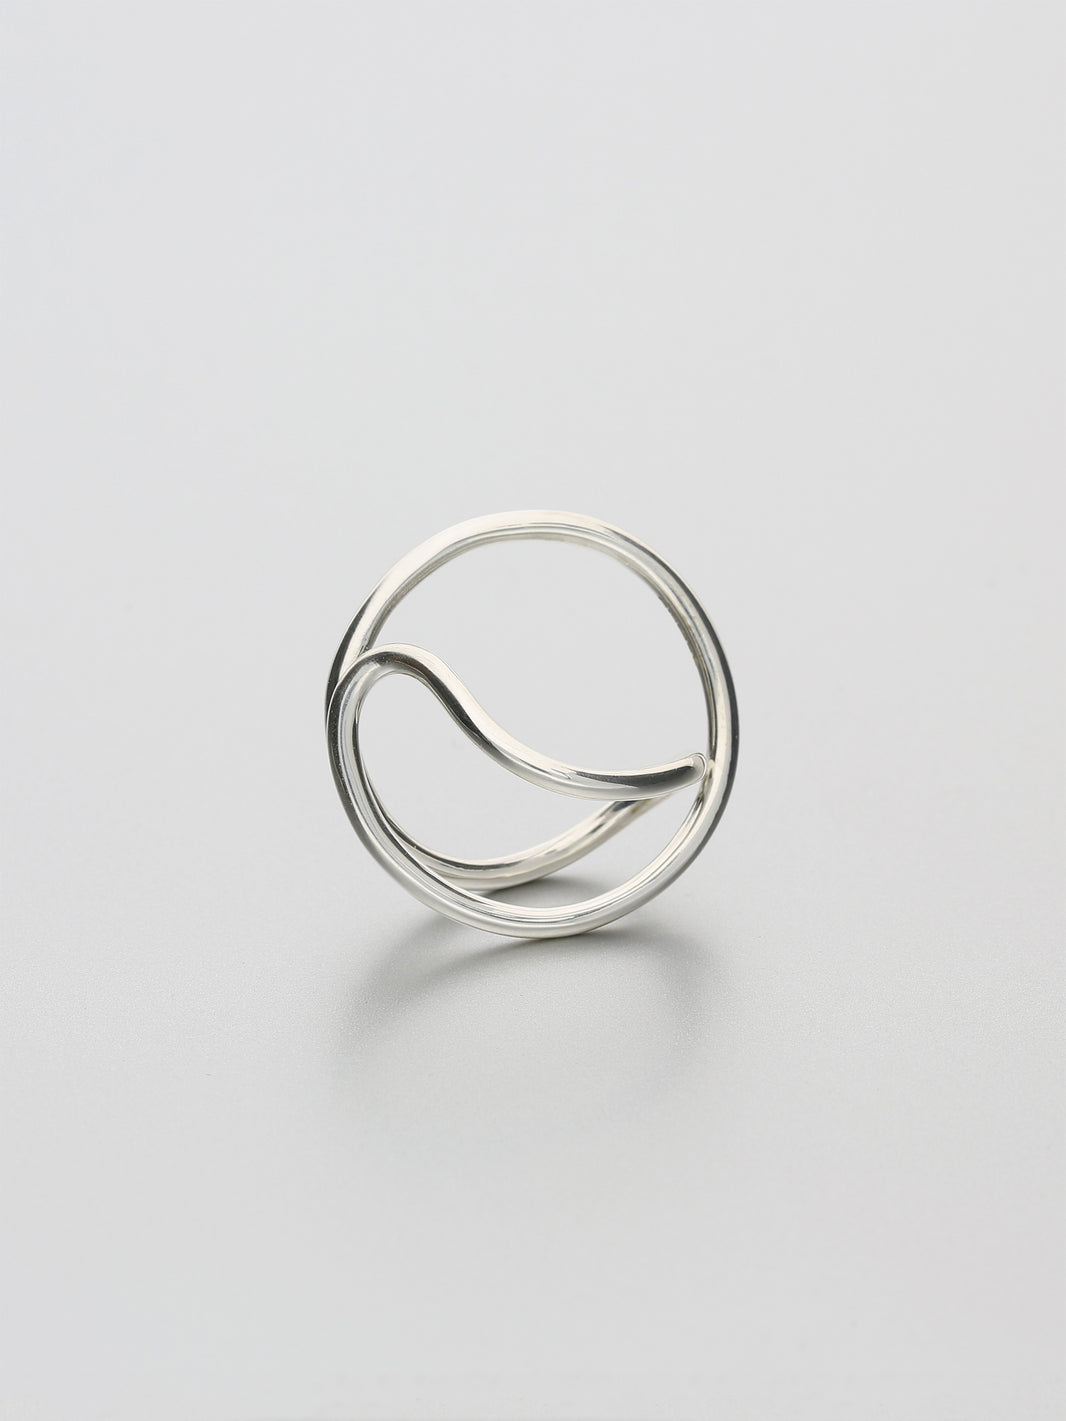 Aeon Ring, I Silver